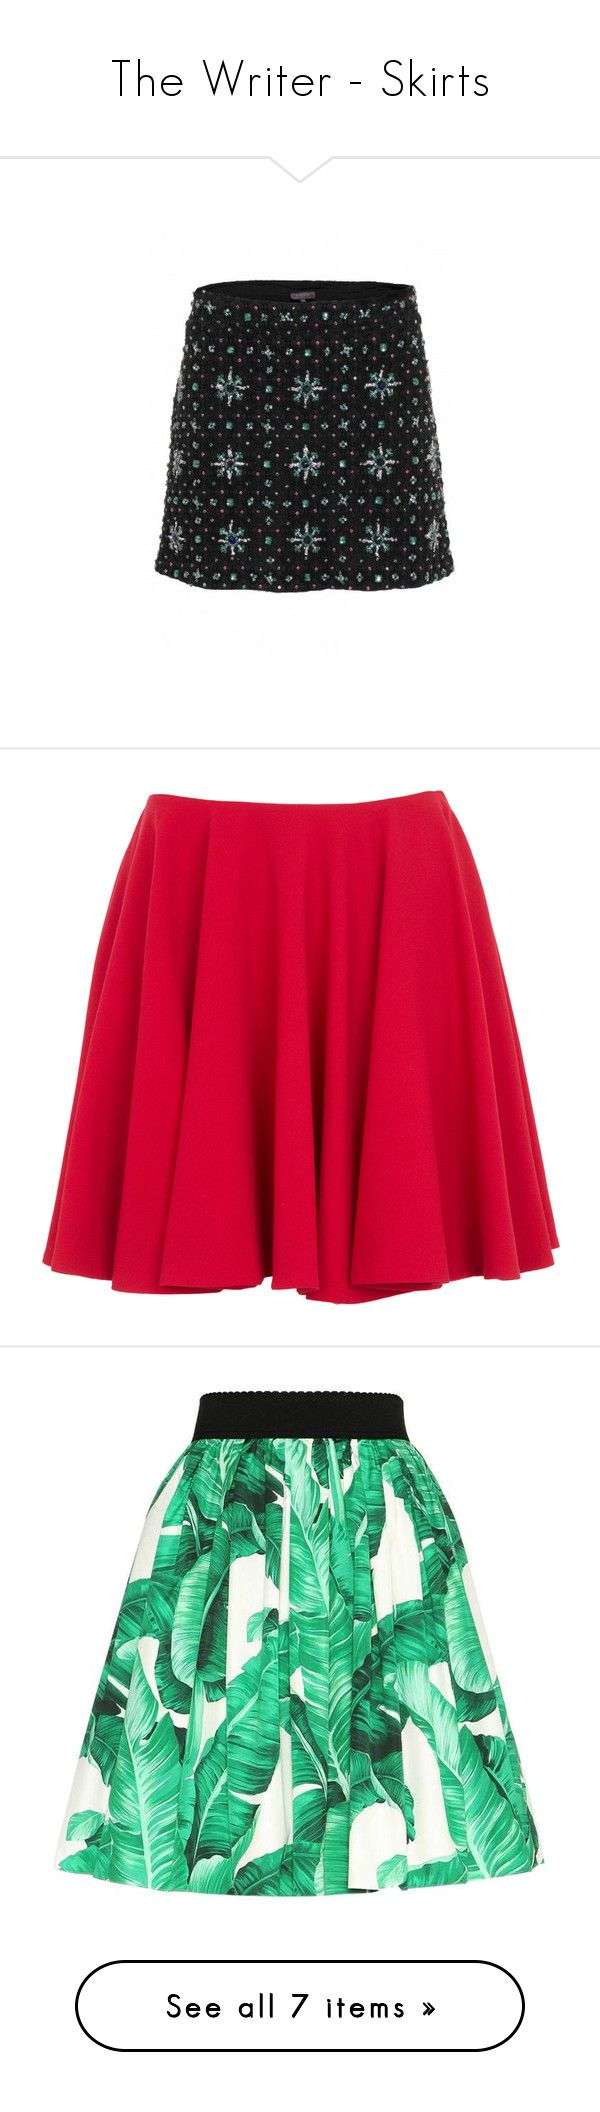 """The Writer - Skirts"" by gracebeckett ❤ liked on Polyvore featuring skirts, bottoms, saias, faldas, red, flared hem skirt, red flared skirt, red wool skirt, red skirt and red flare skirt"